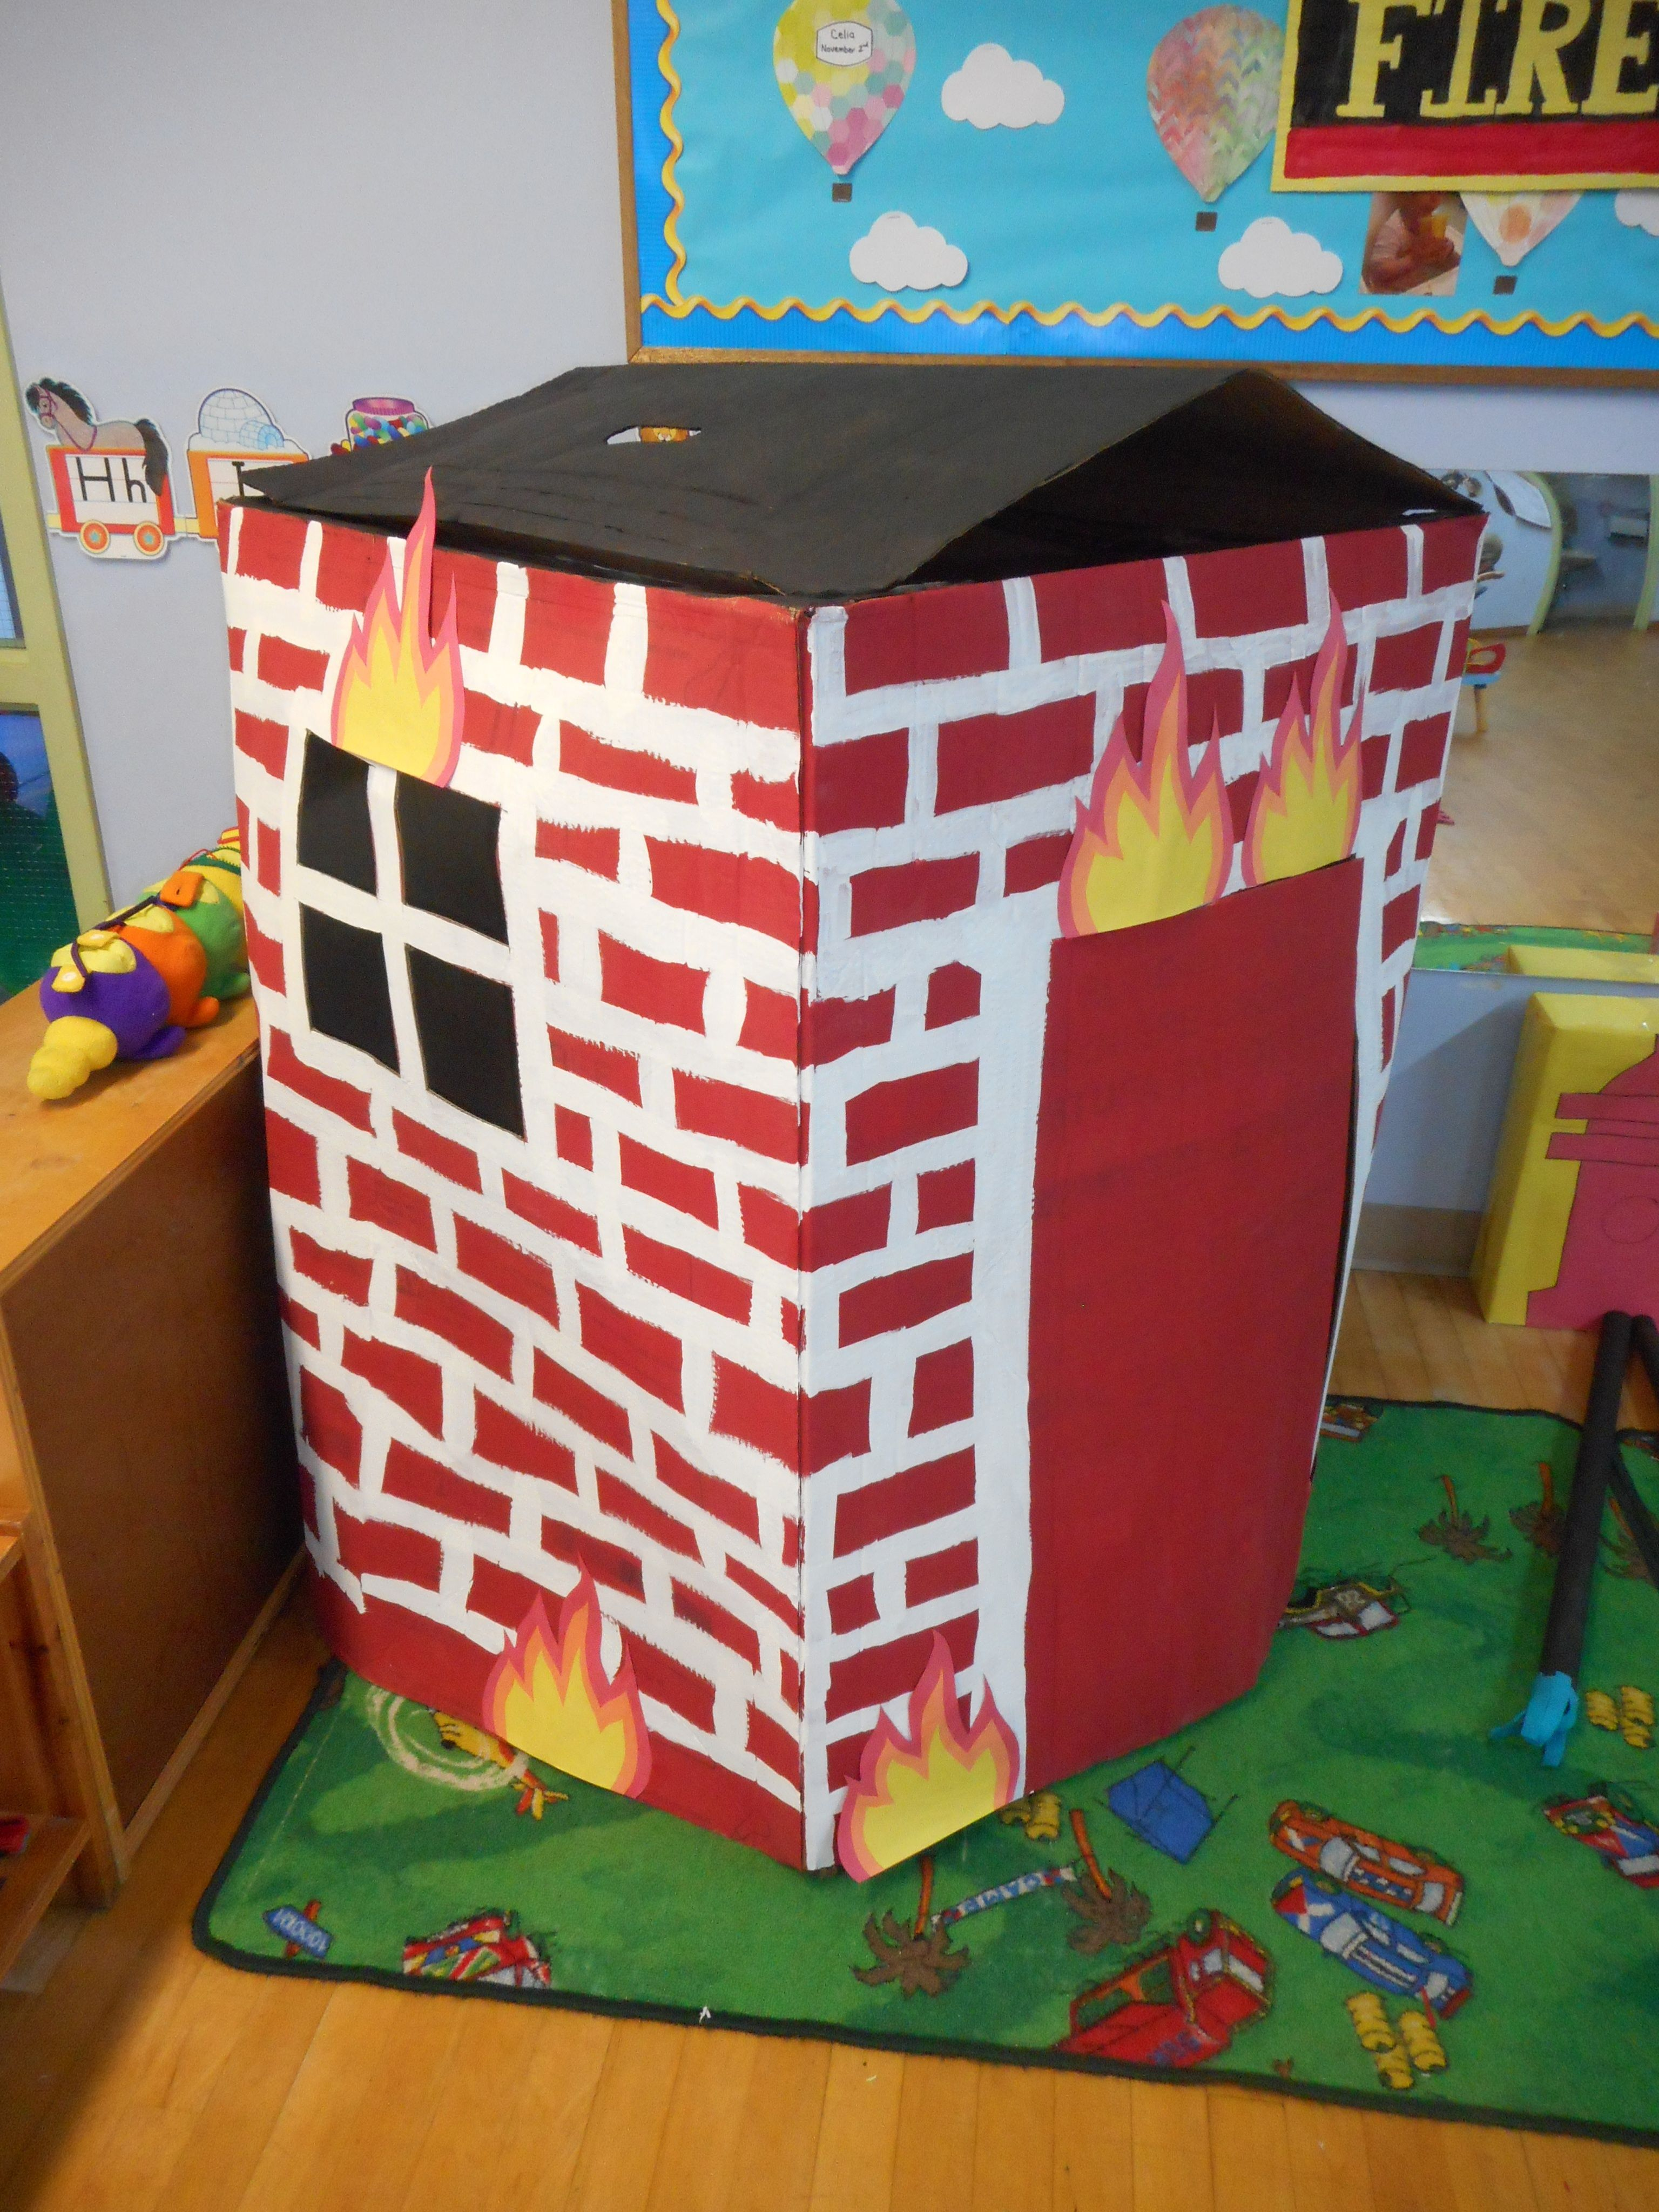 Fire Station Dramatic Play Diy Burning Building